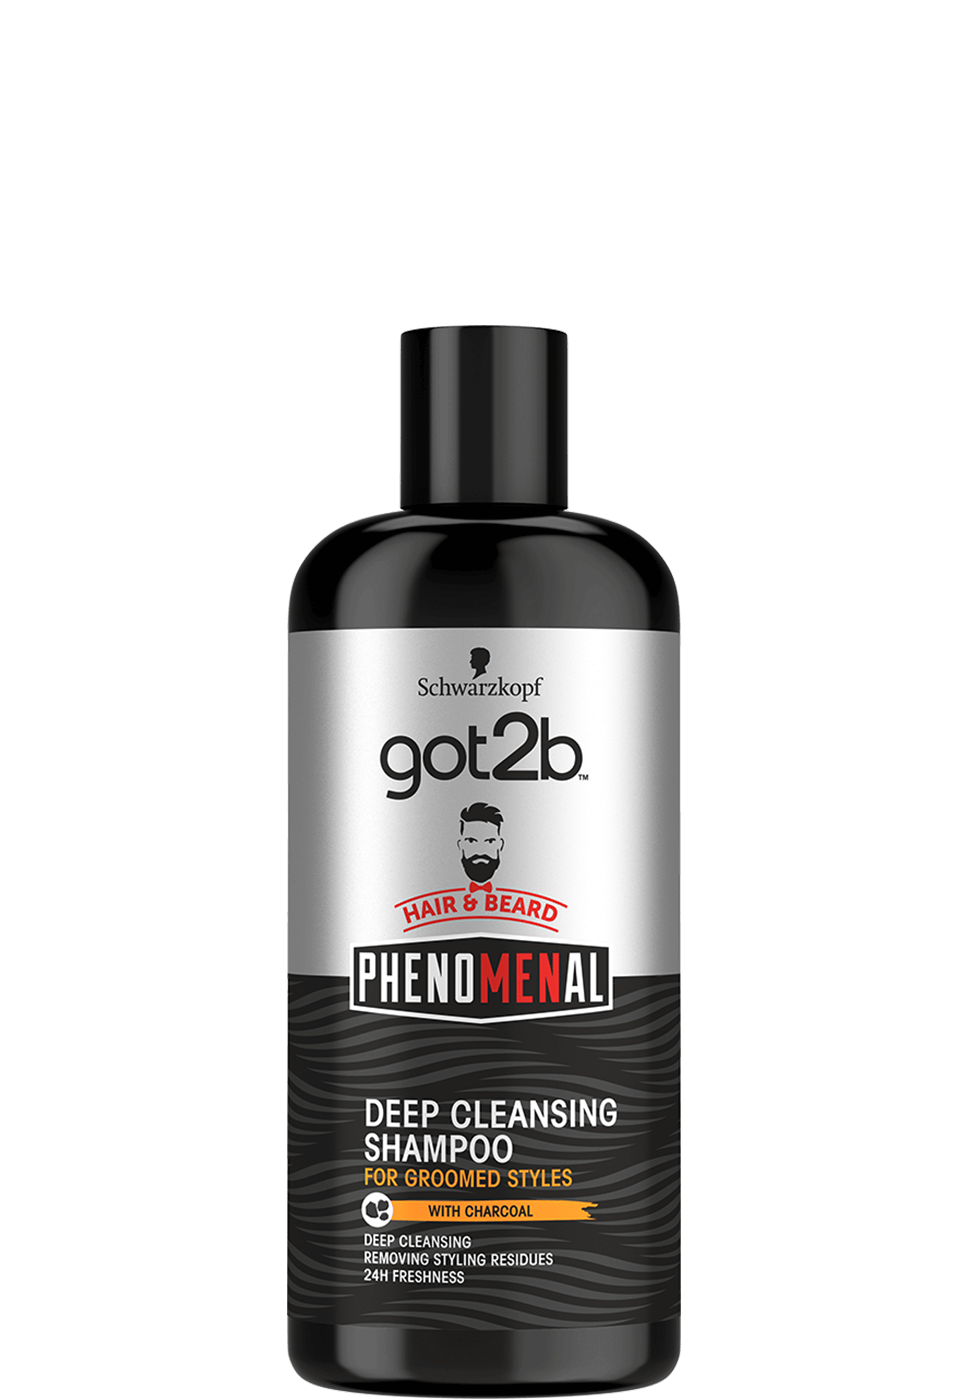 got2b_com_phenomenal_deep_cleansing_shampoo_970x1400